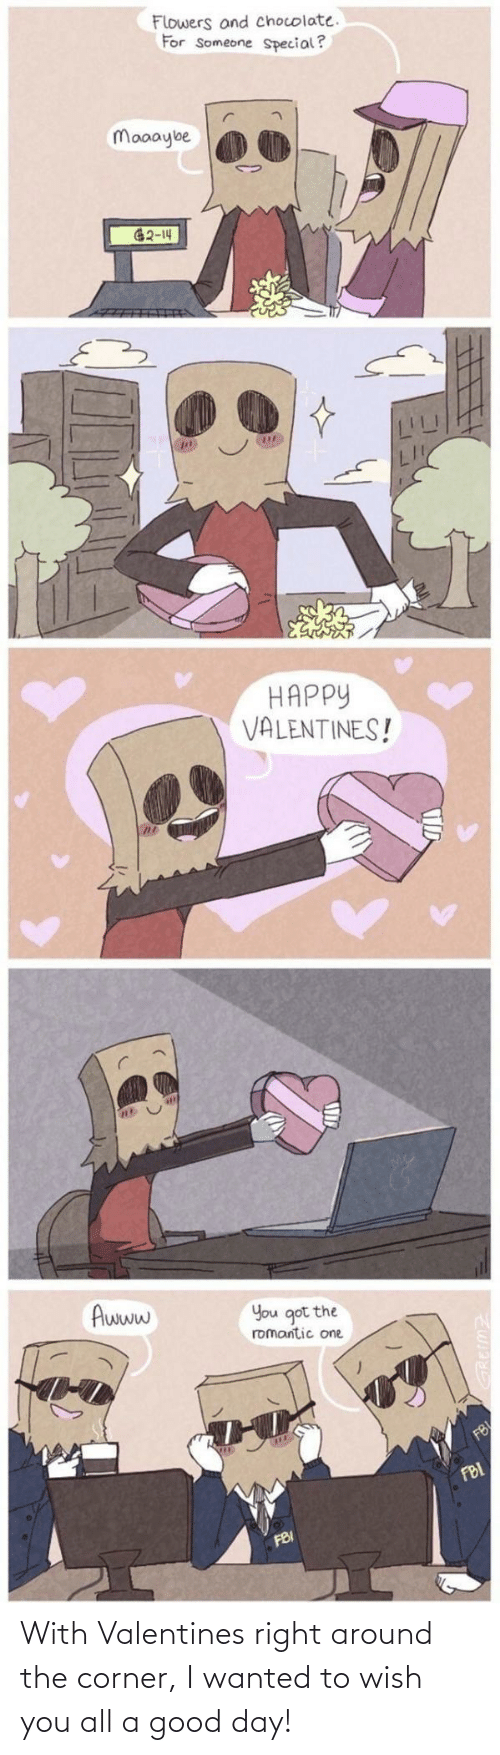 good day: With Valentines right around the corner, I wanted to wish you all a good day!